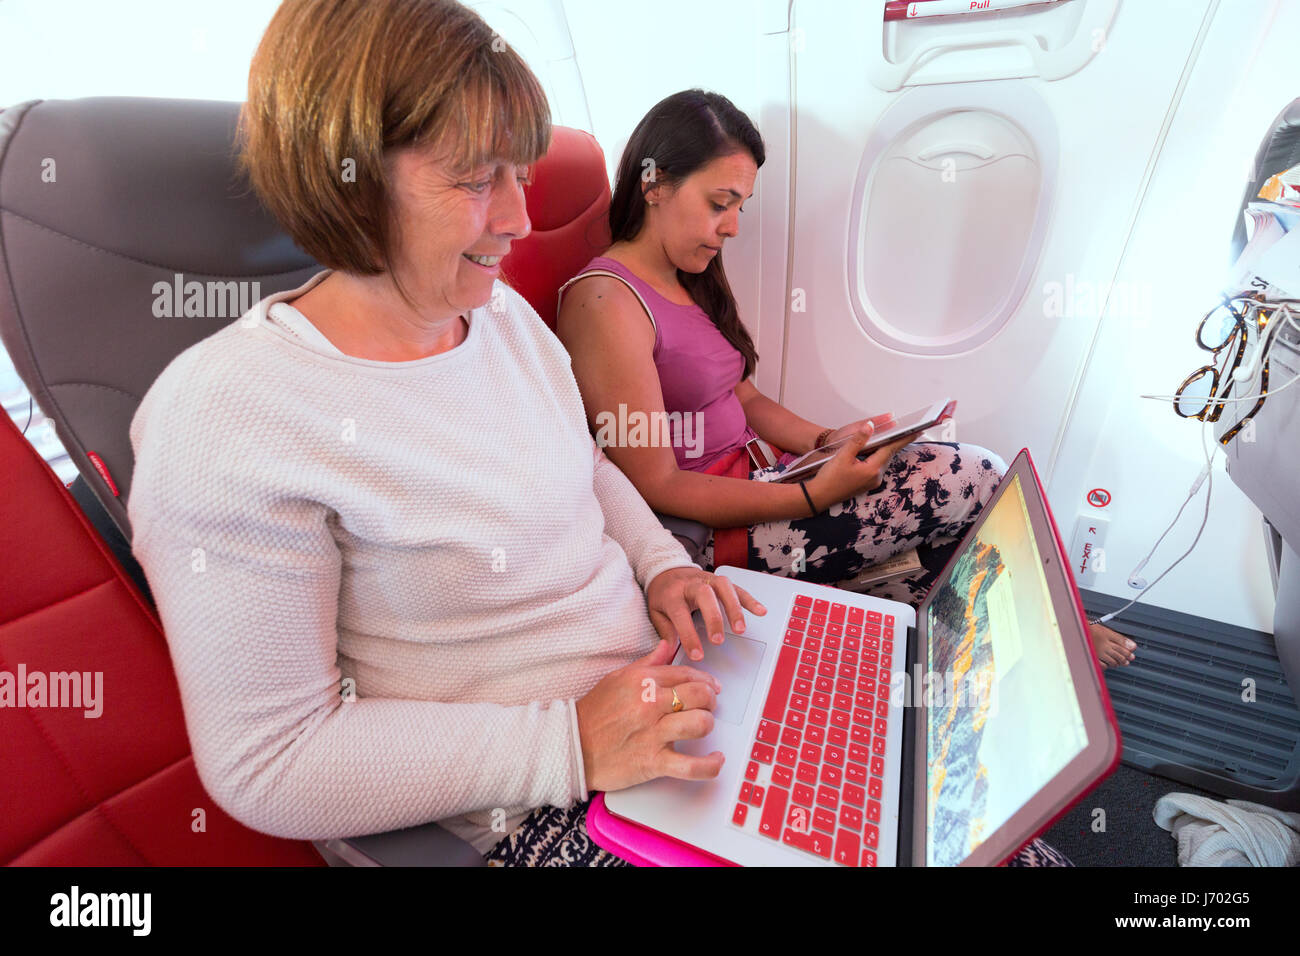 Plane passengers in the airplane cabin using laptop computer and Pad, or tablet computers; in flight - Stock Image